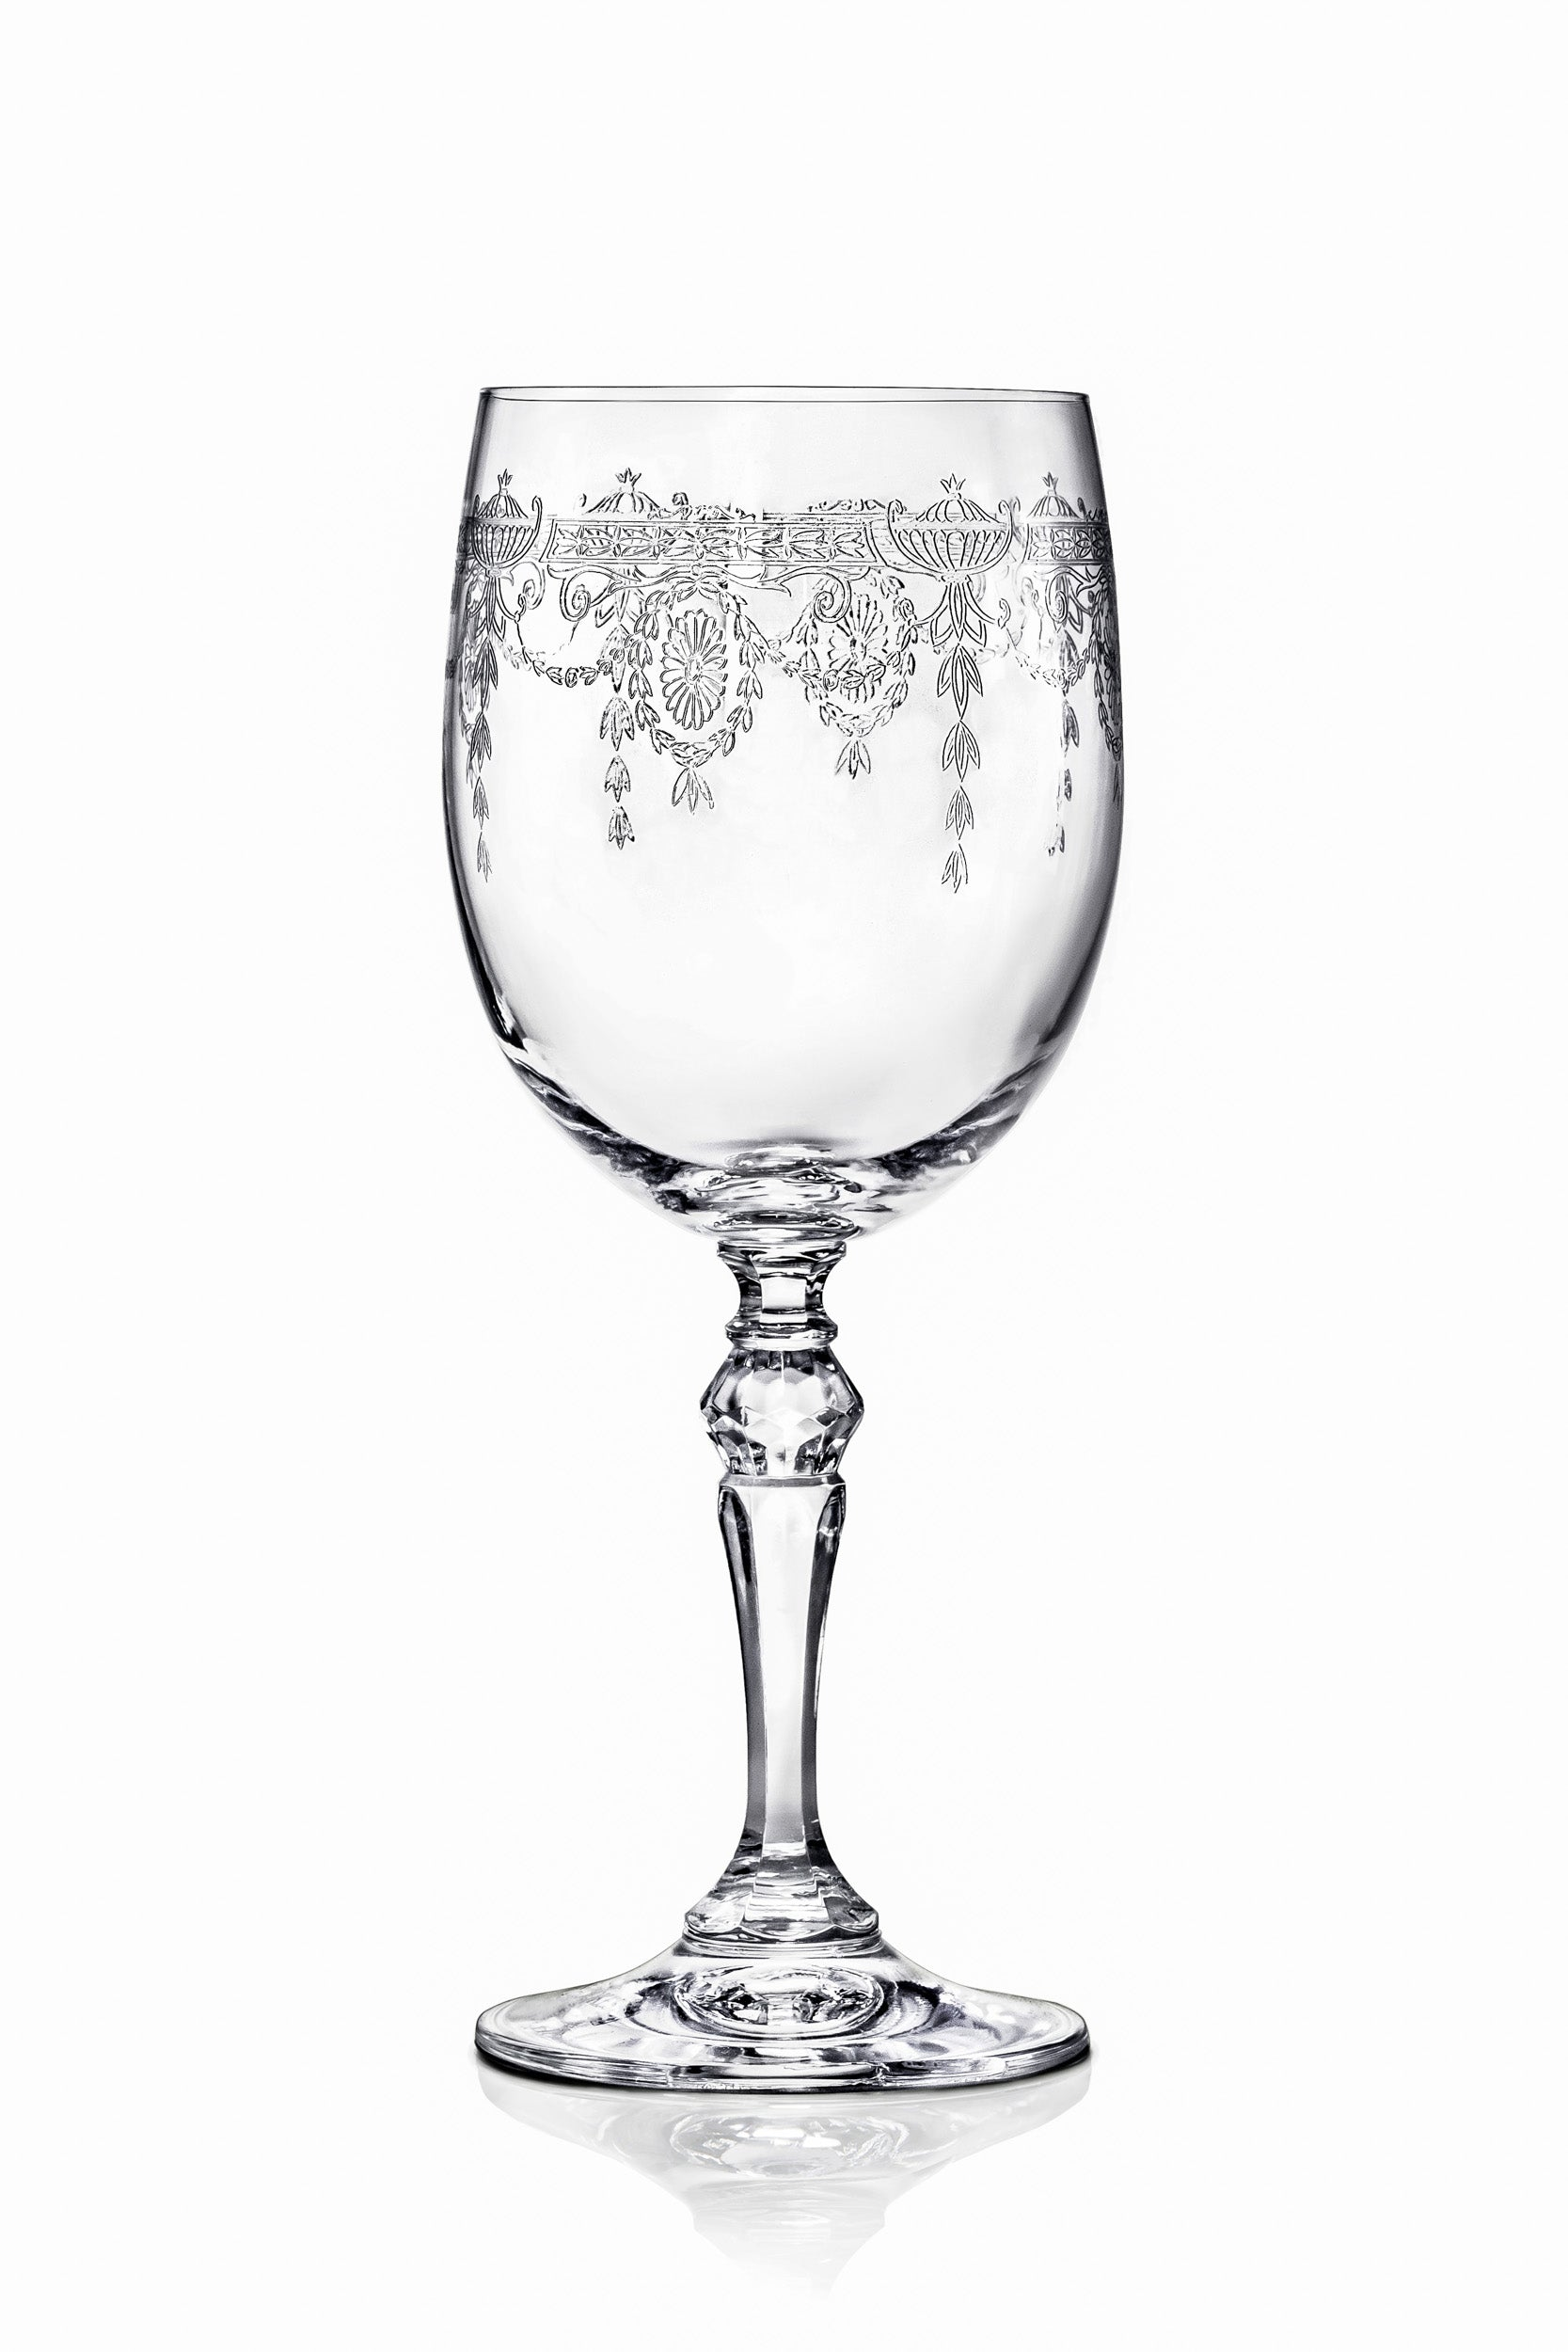 Catherine Red Wine Glasses - Set of 6